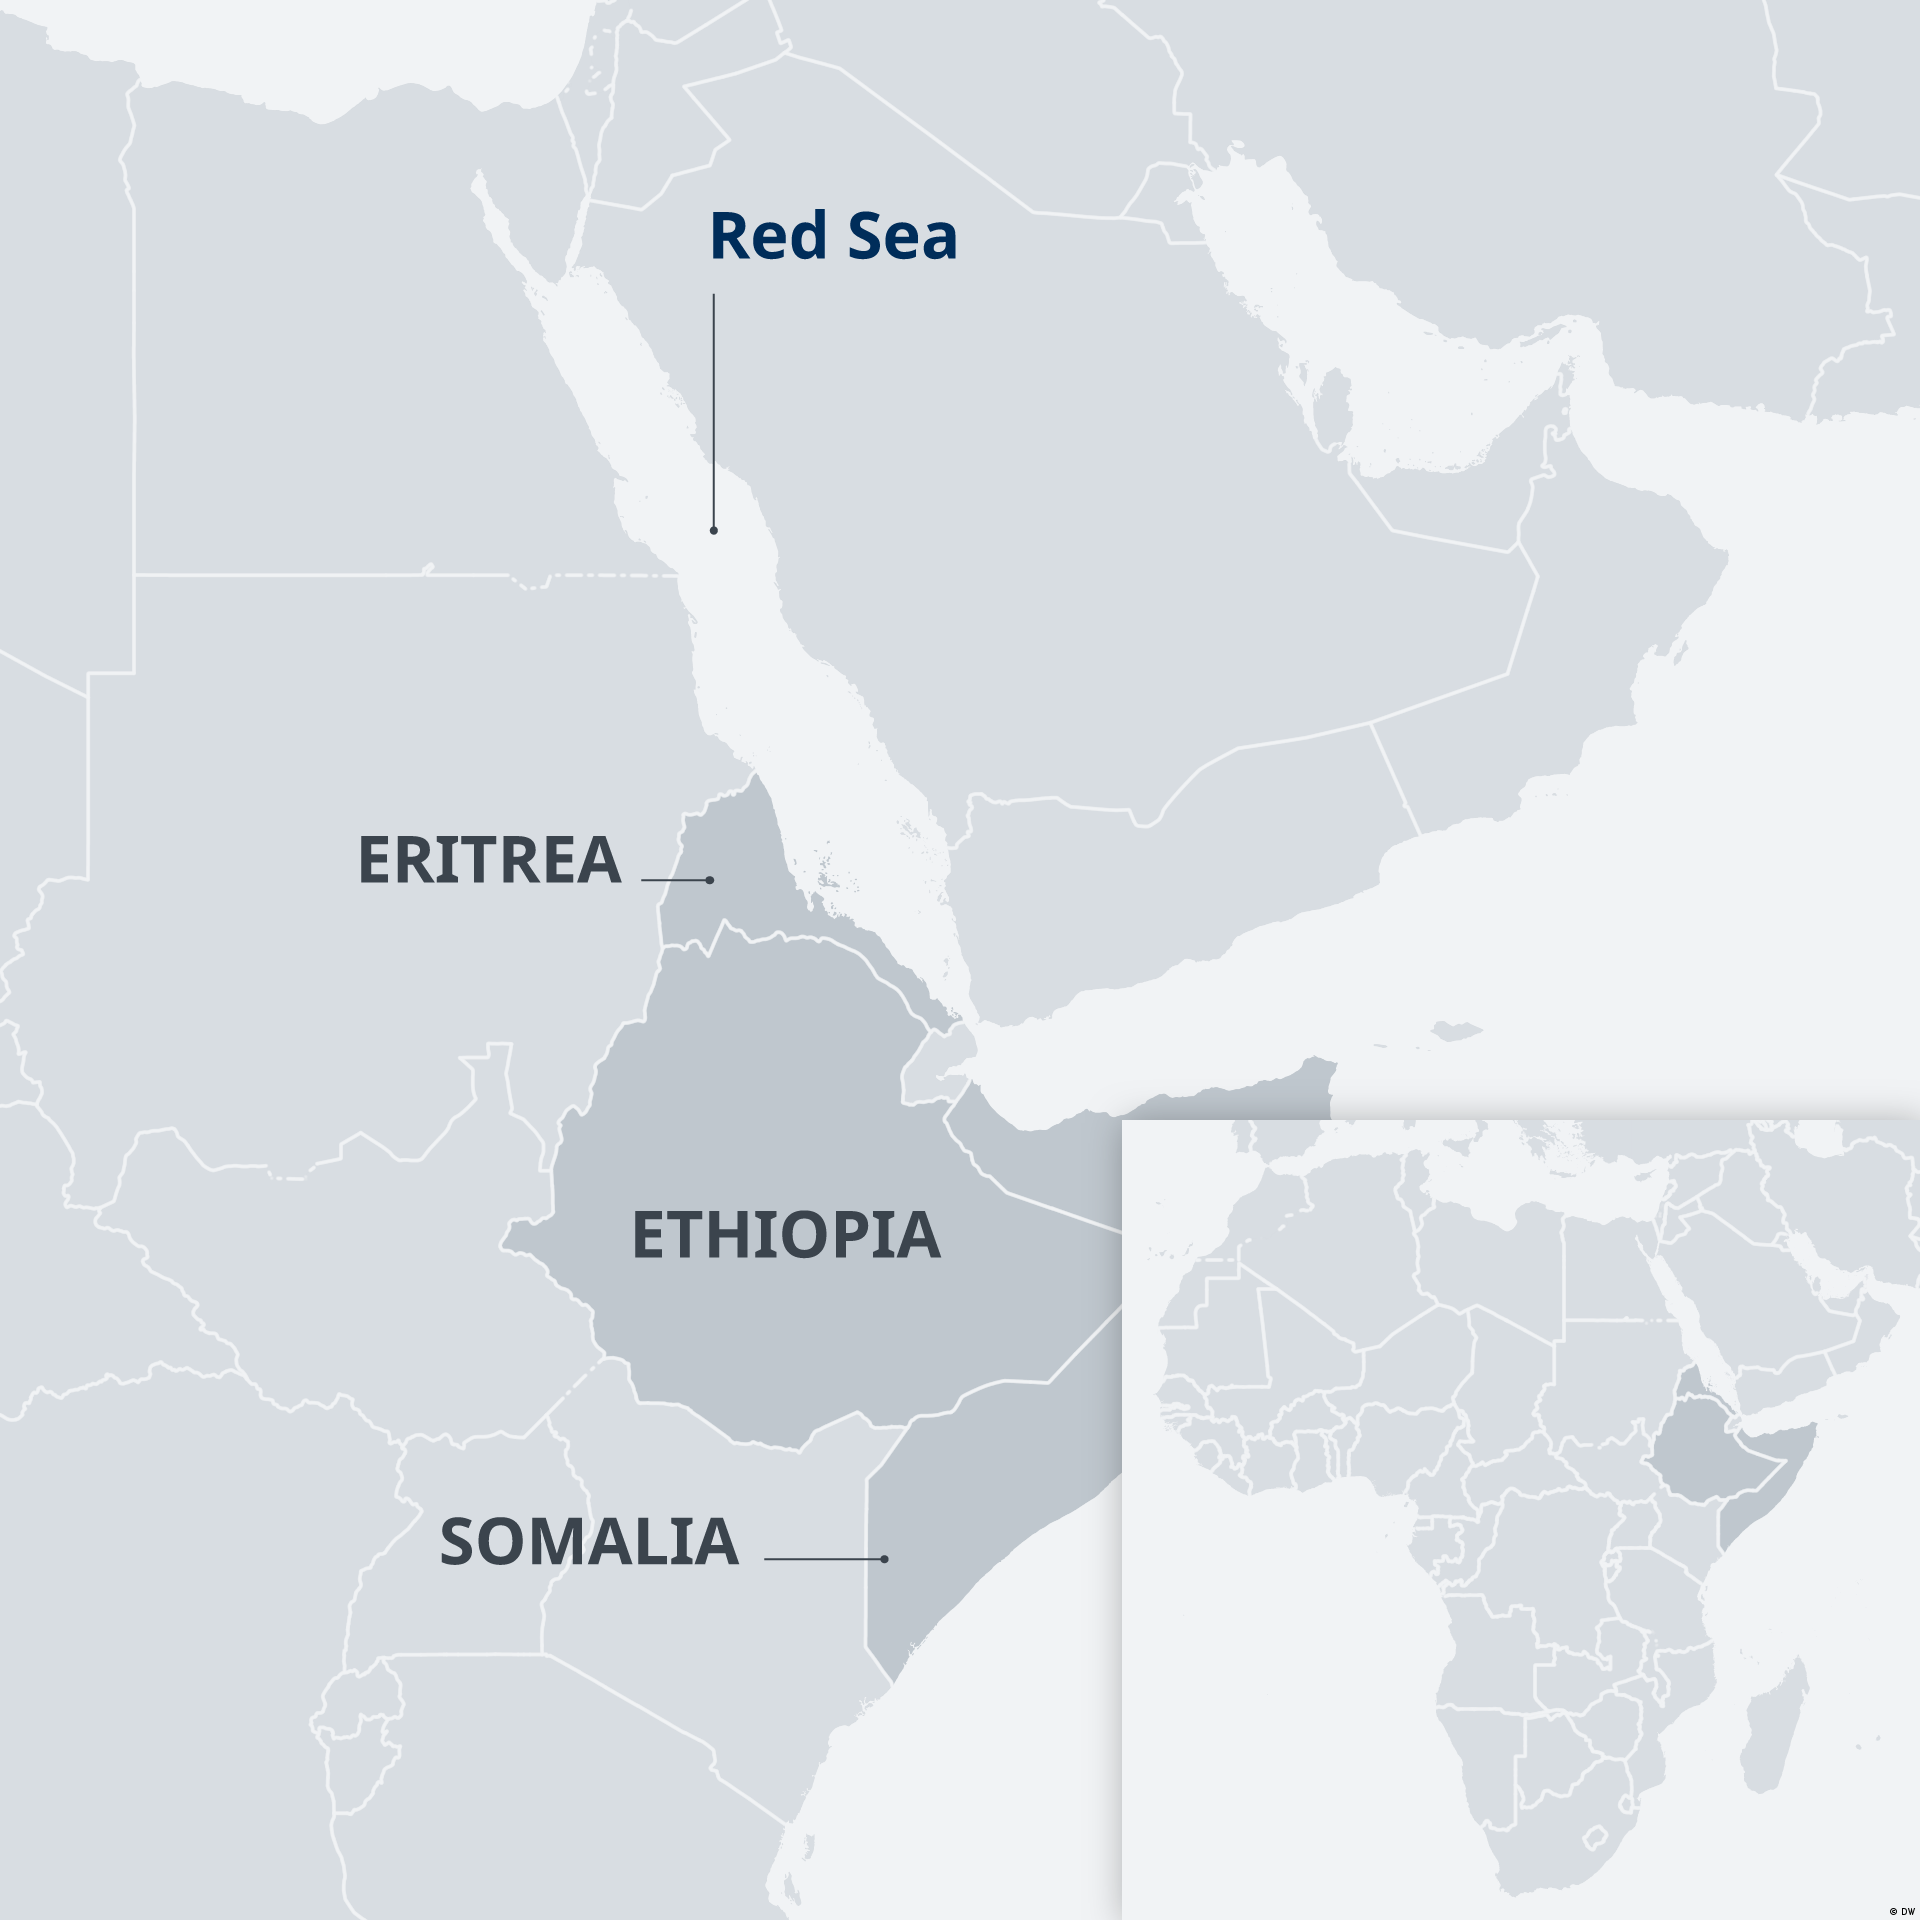 A map of the Horn of Africa and the Red Sea